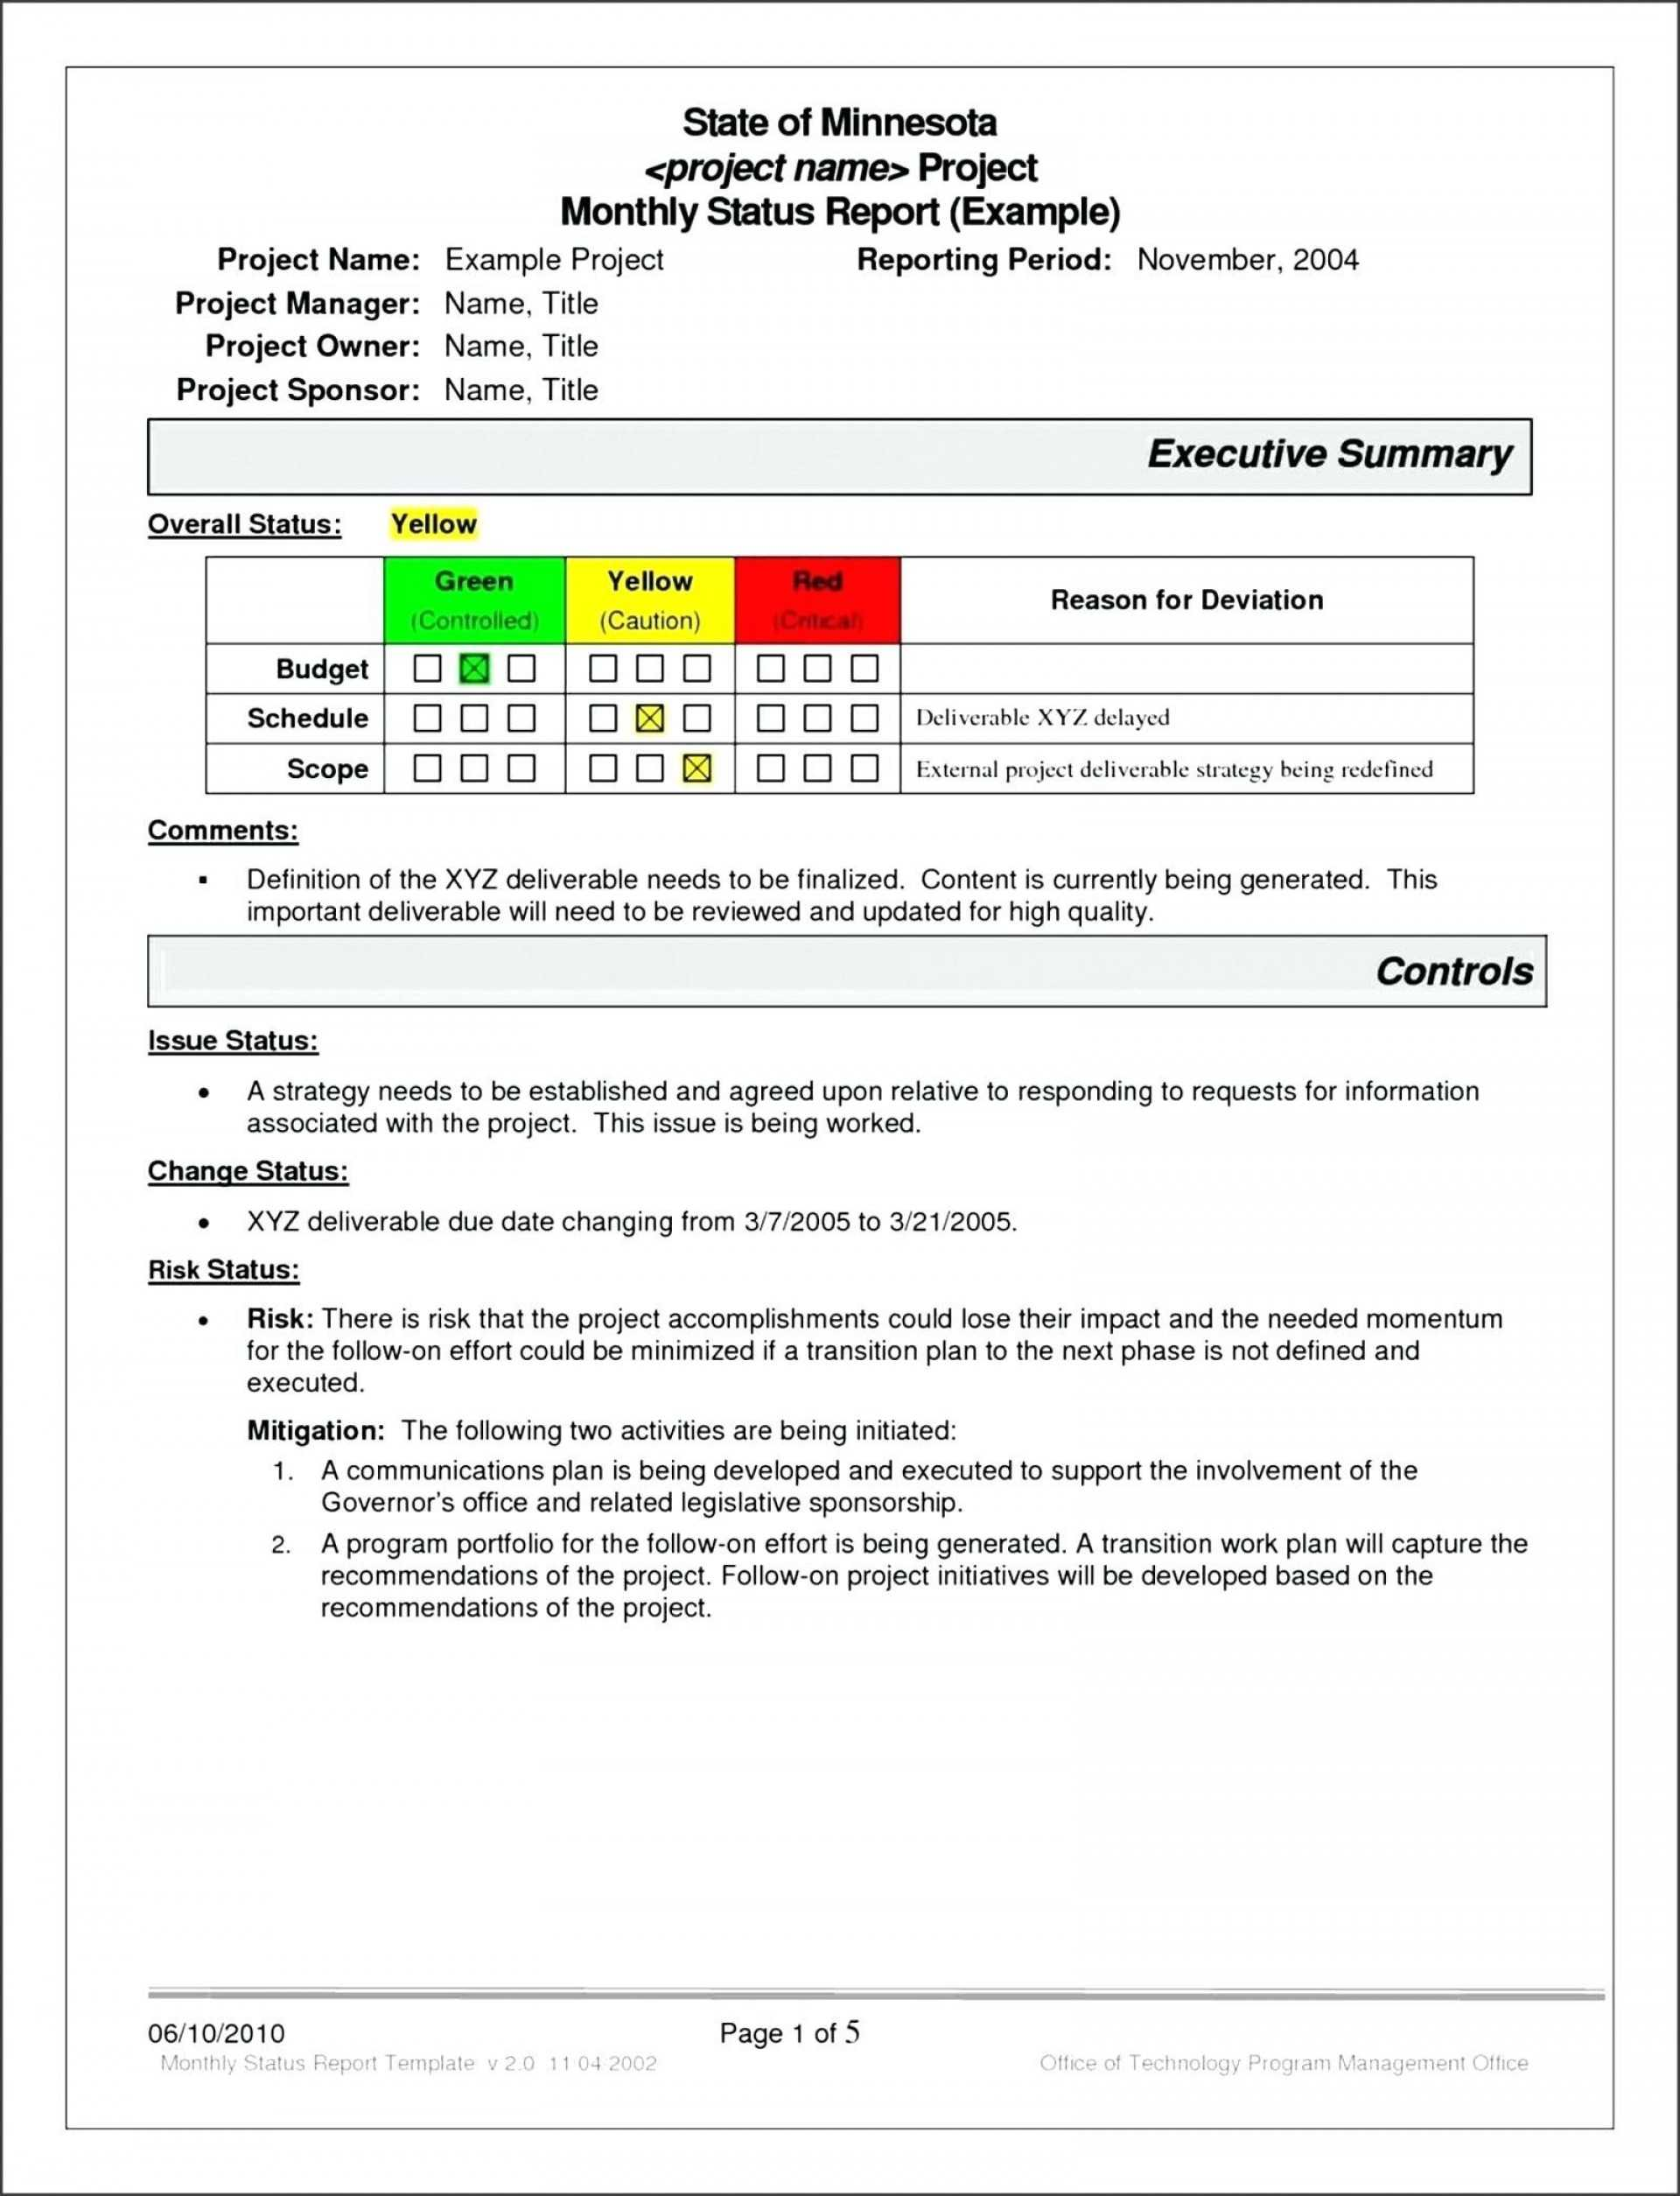 033 Project Management Report Template Excel Atus Free S Regarding It Management Report Template